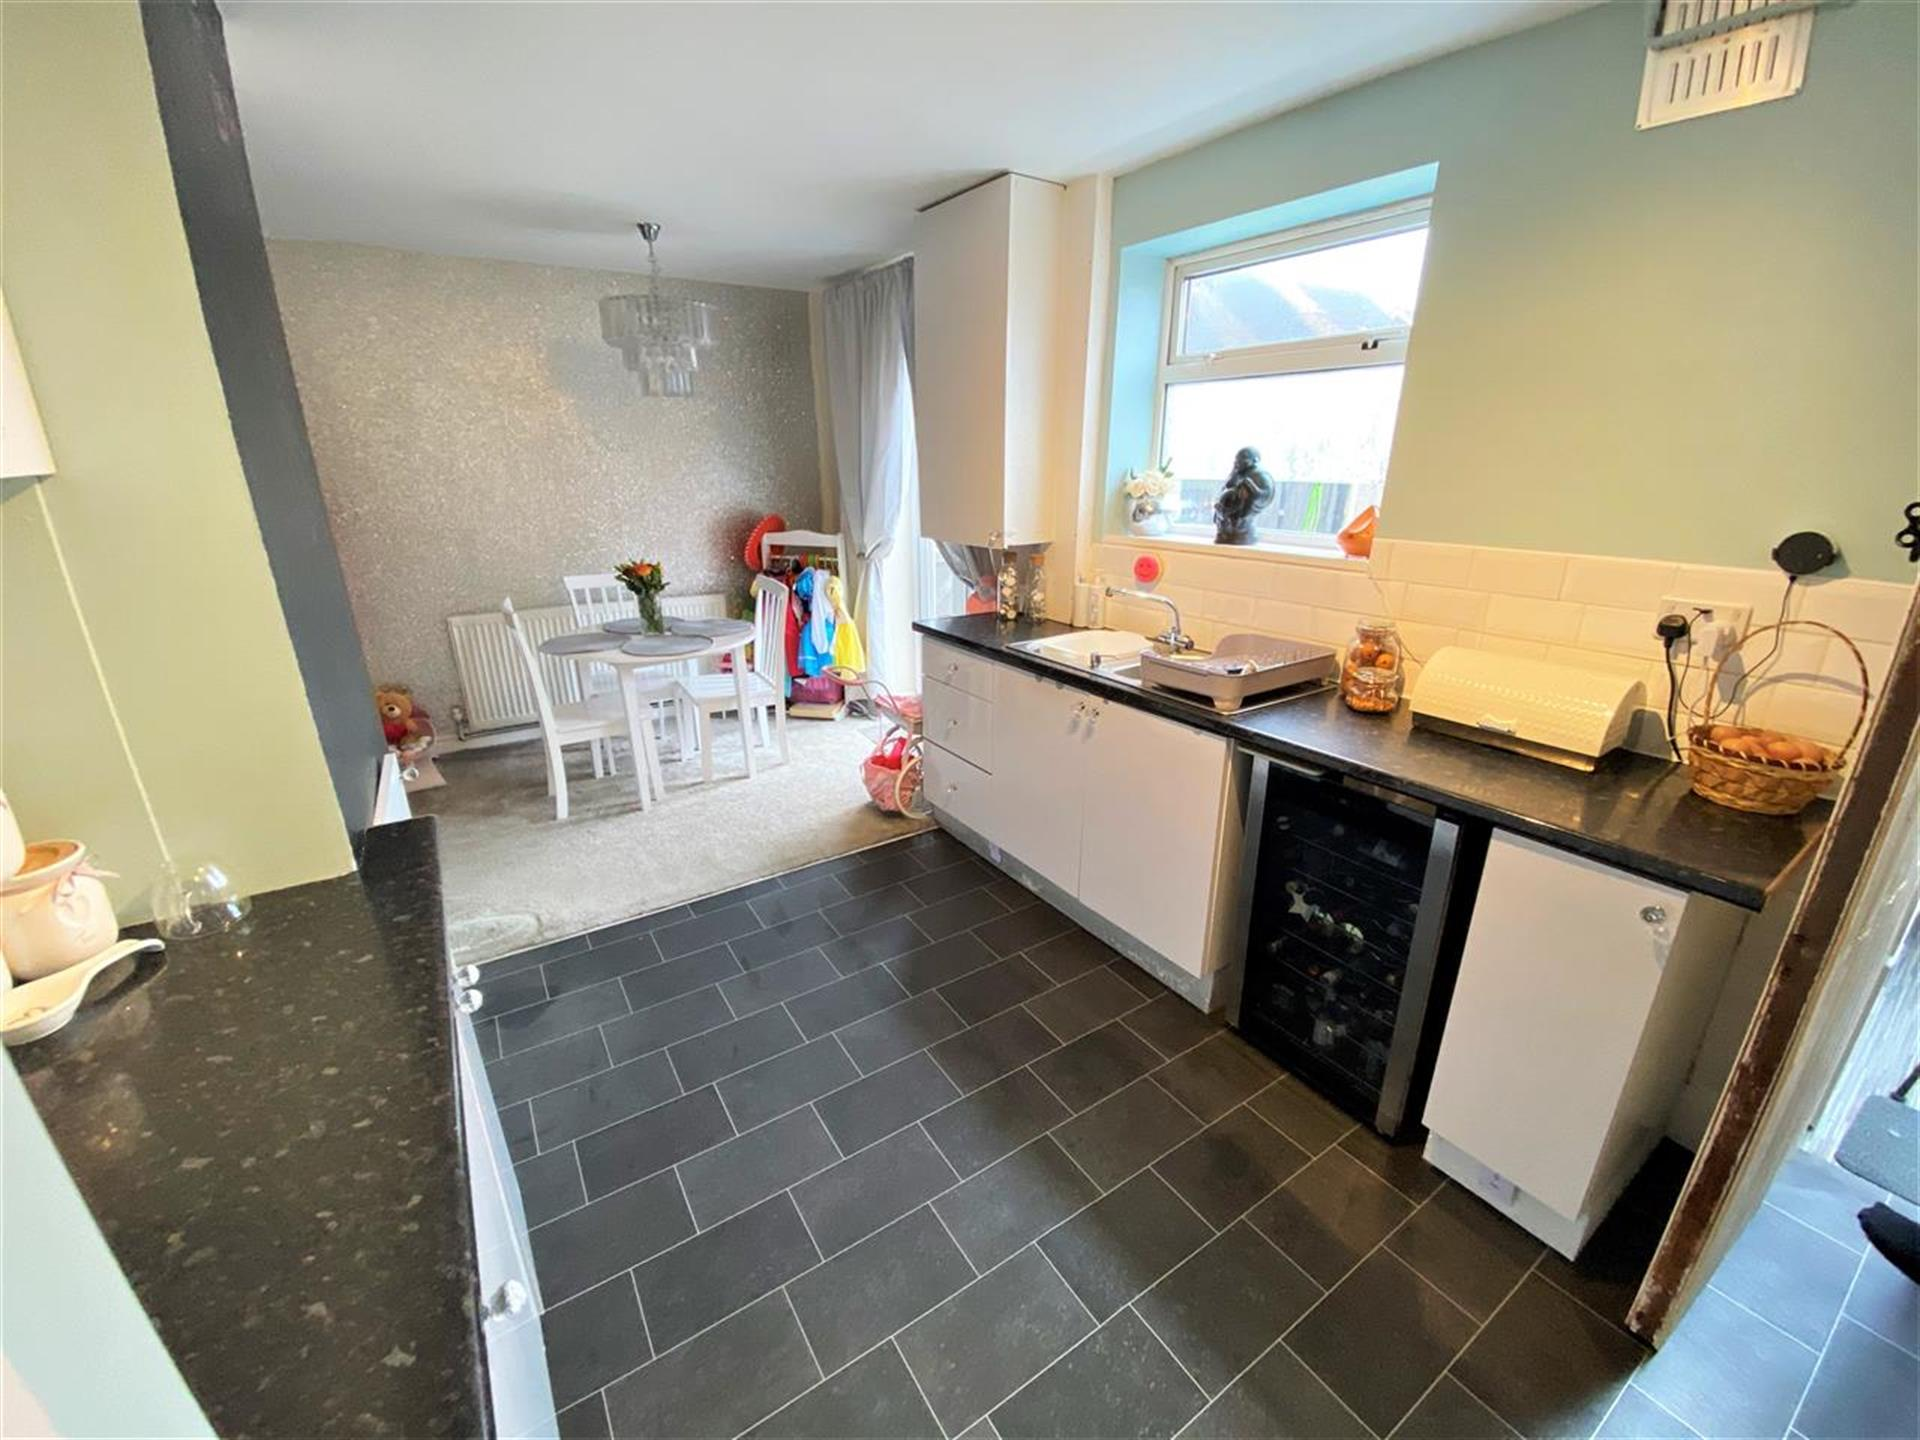 4 Bedroom Terraced House For Sale - Image 4